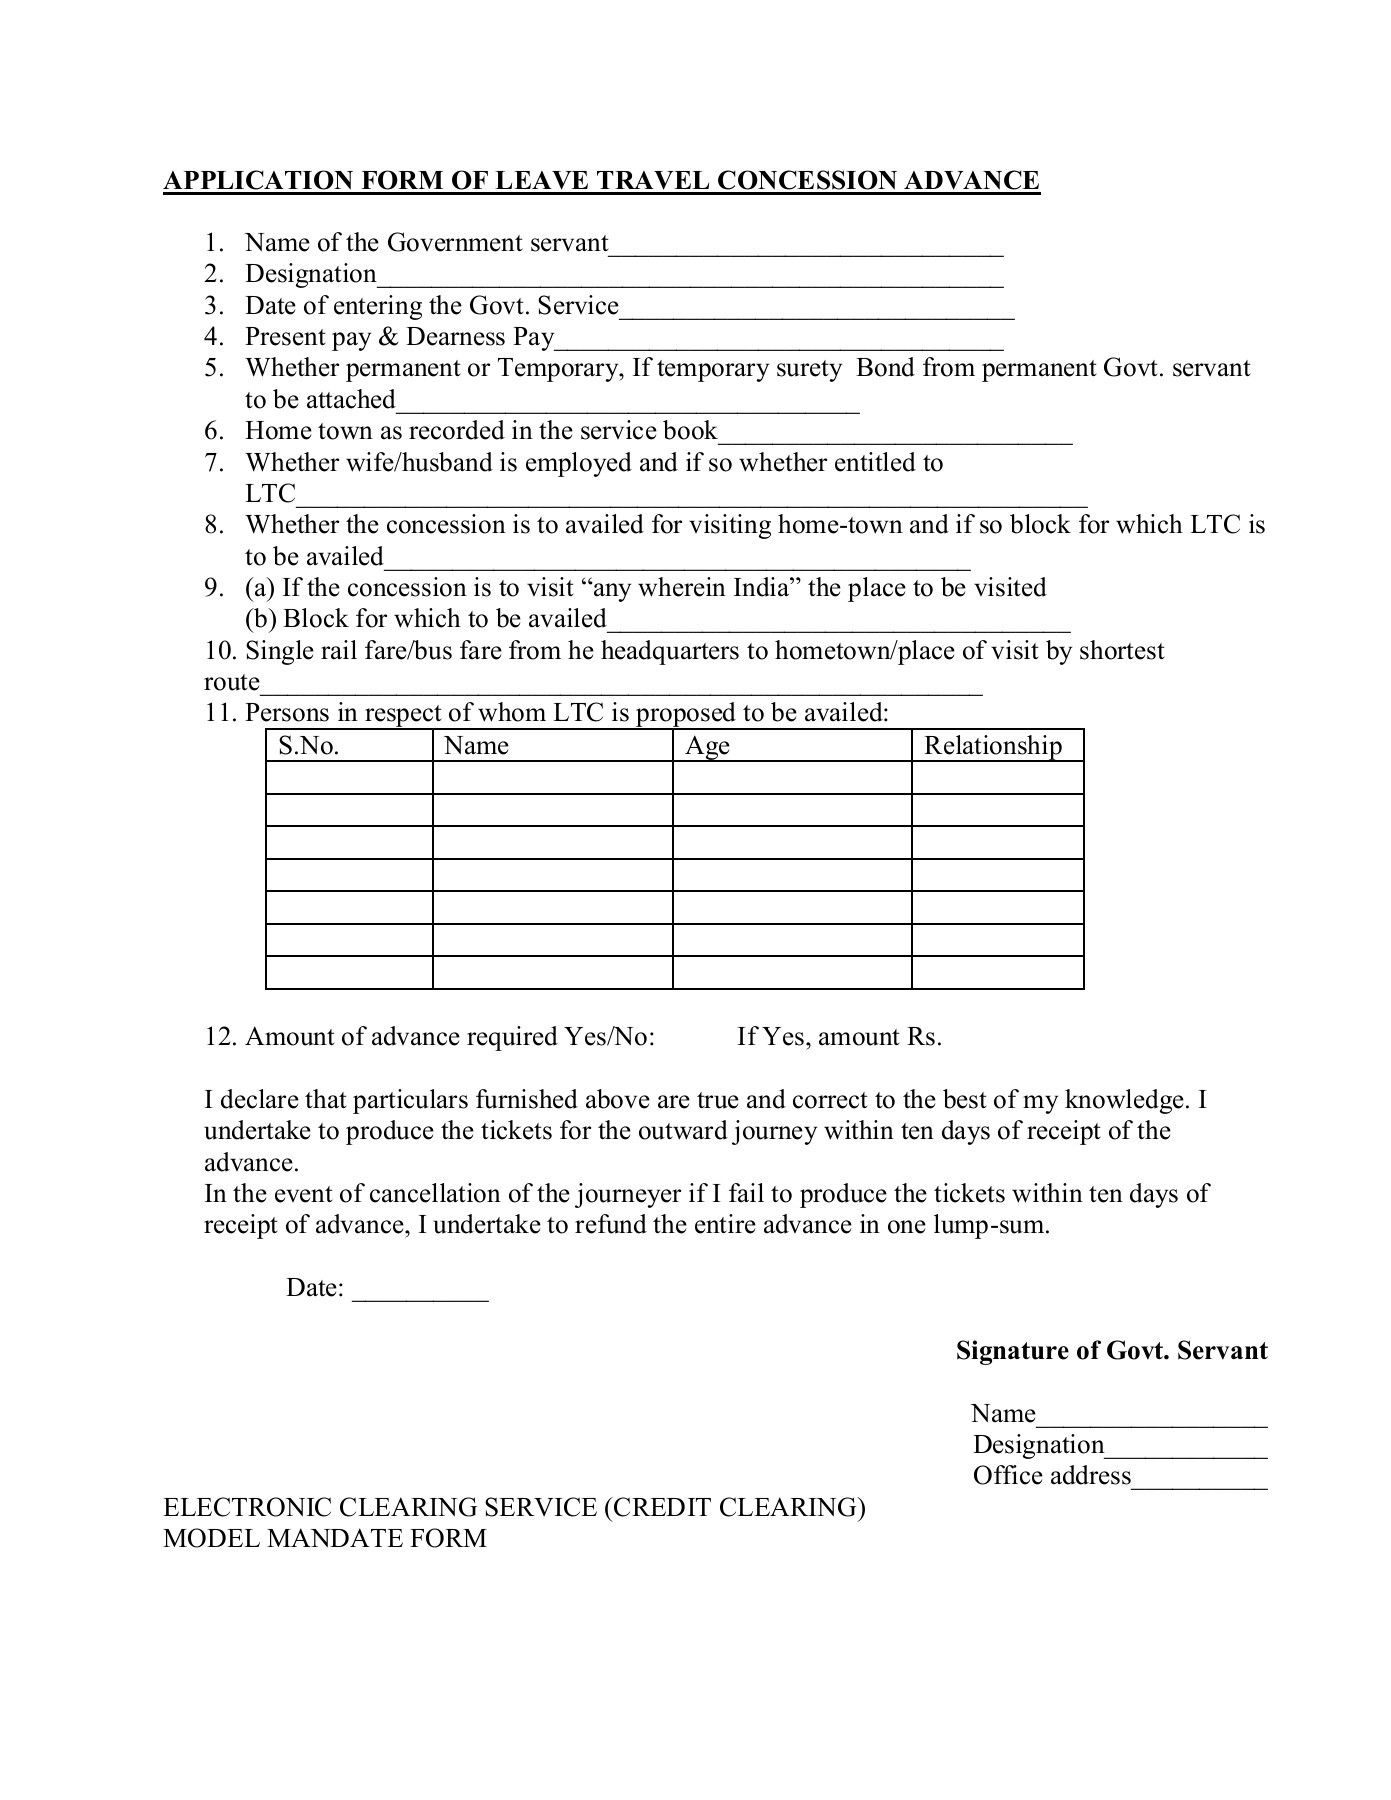 Surety Bond Form For Ltc Advance